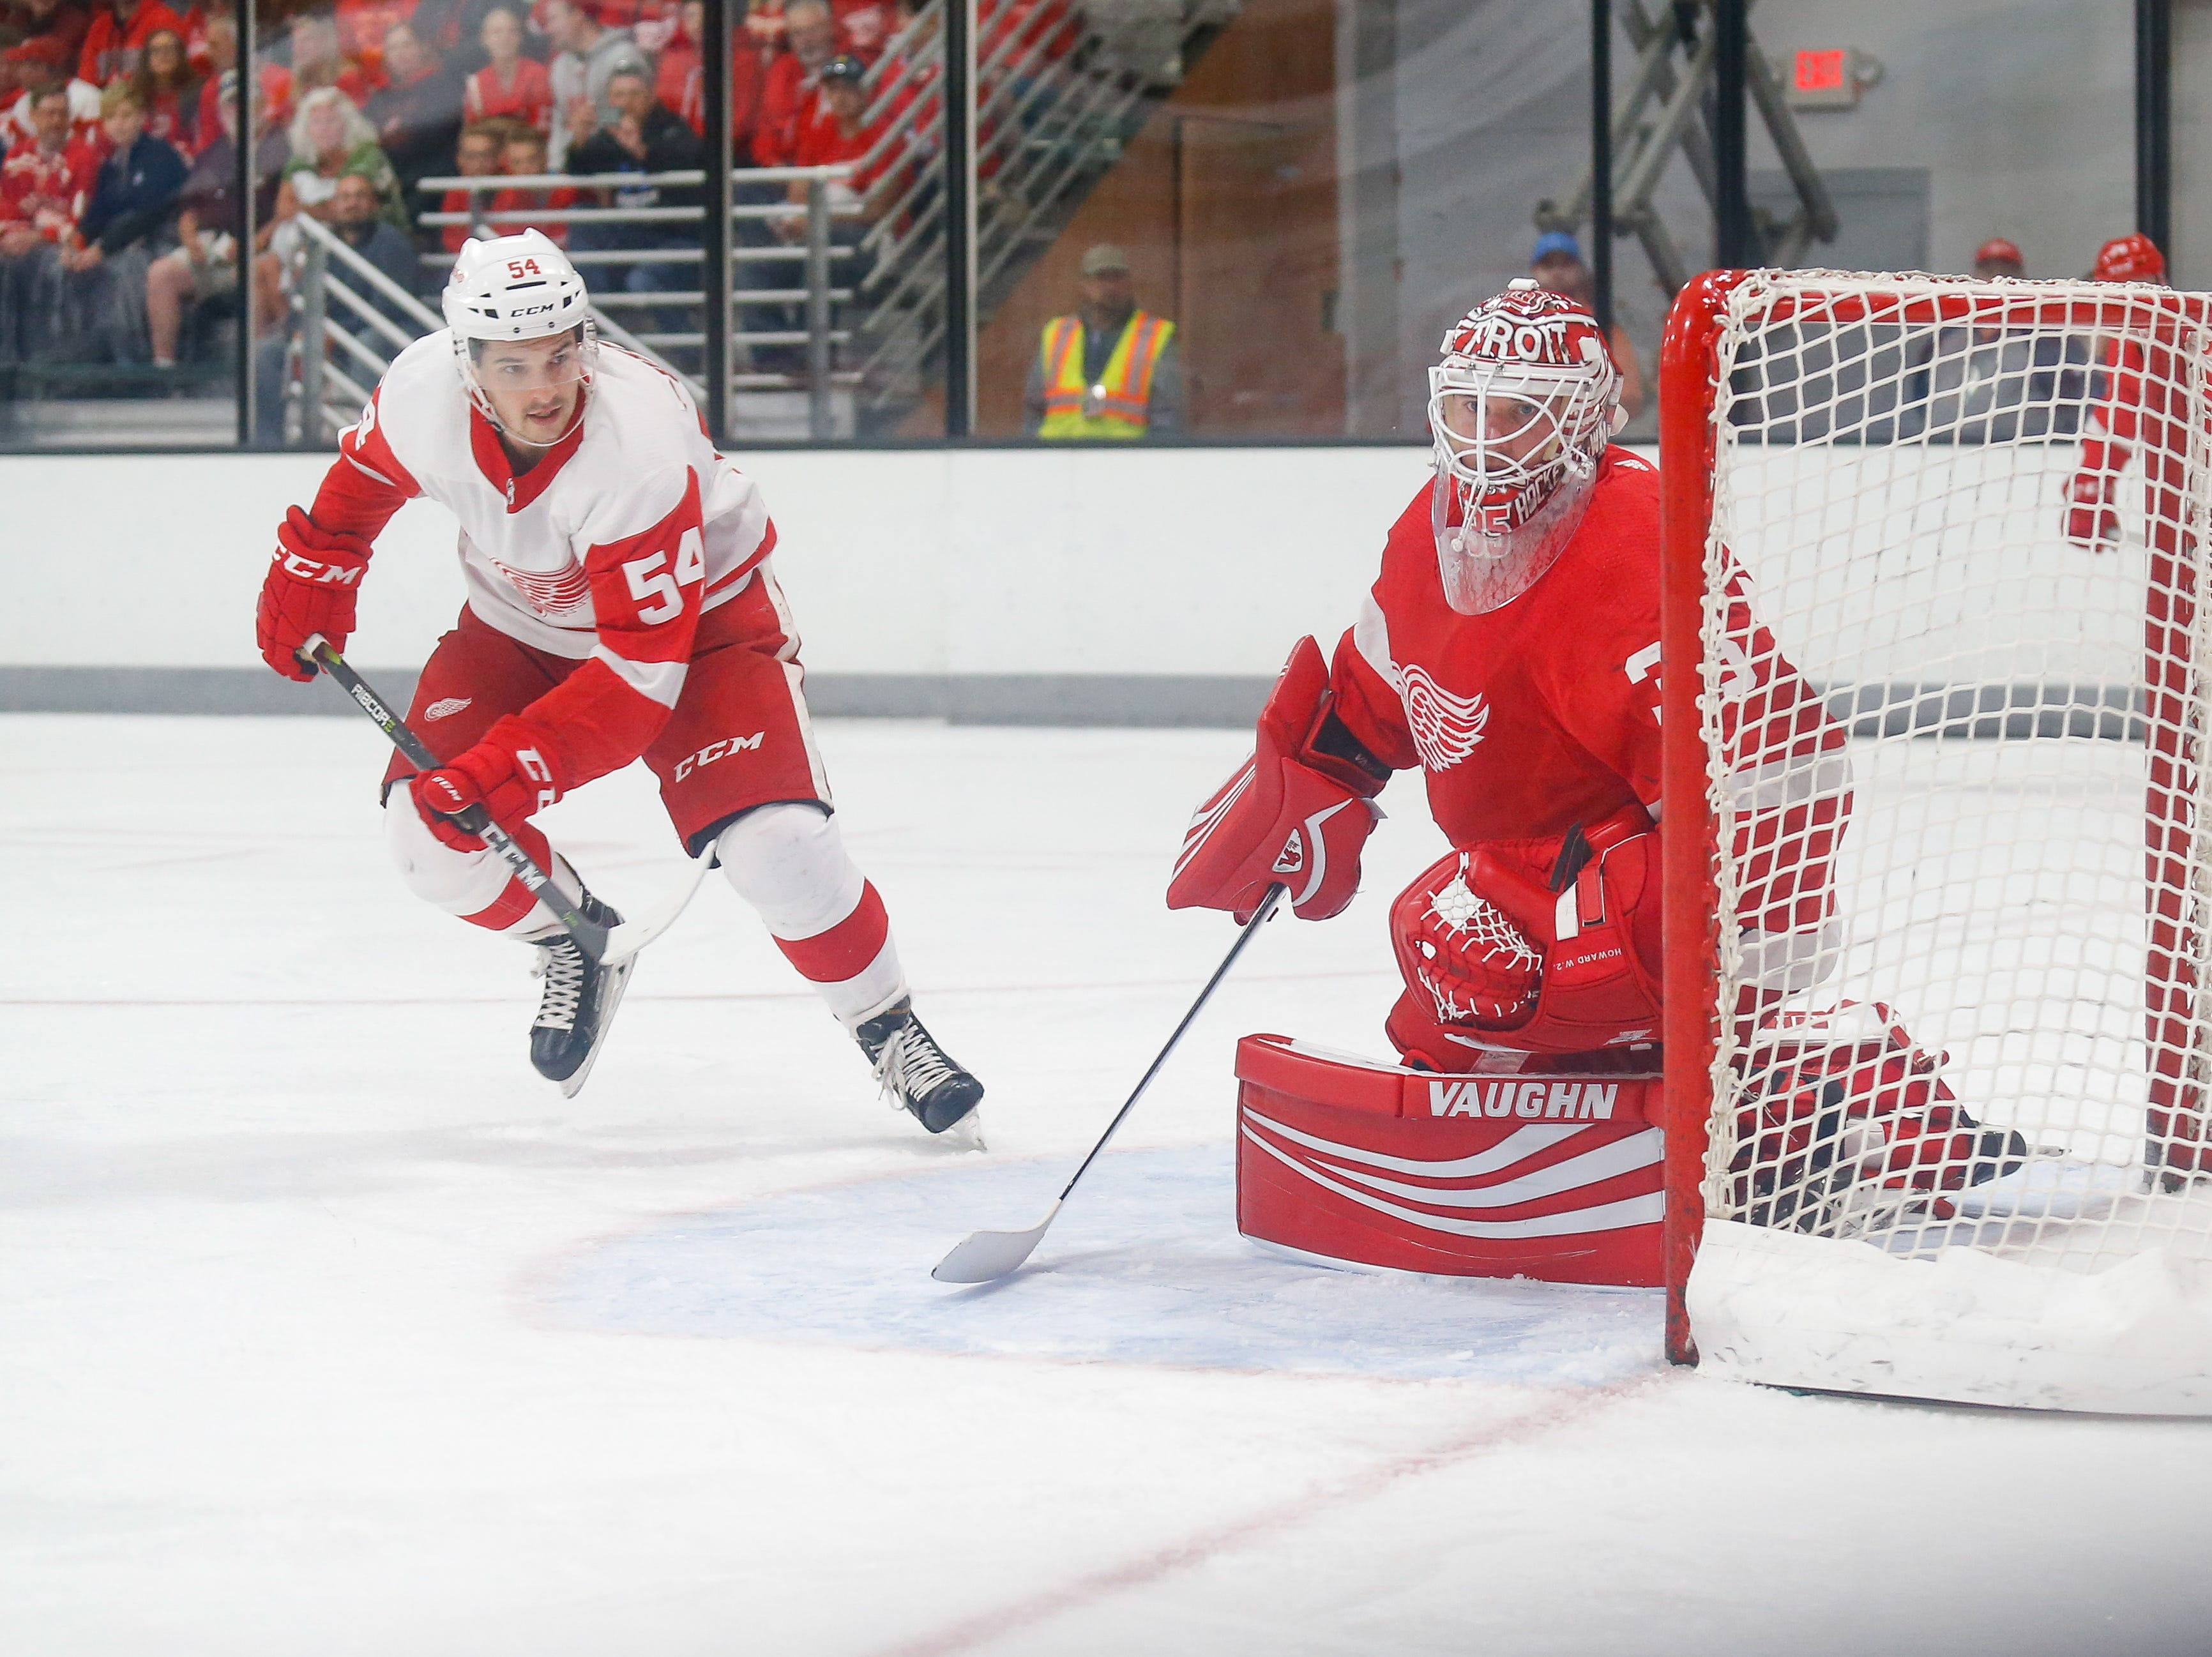 Matt Puempel races for the corner as goaltender Jimmy Howard watches the action there.